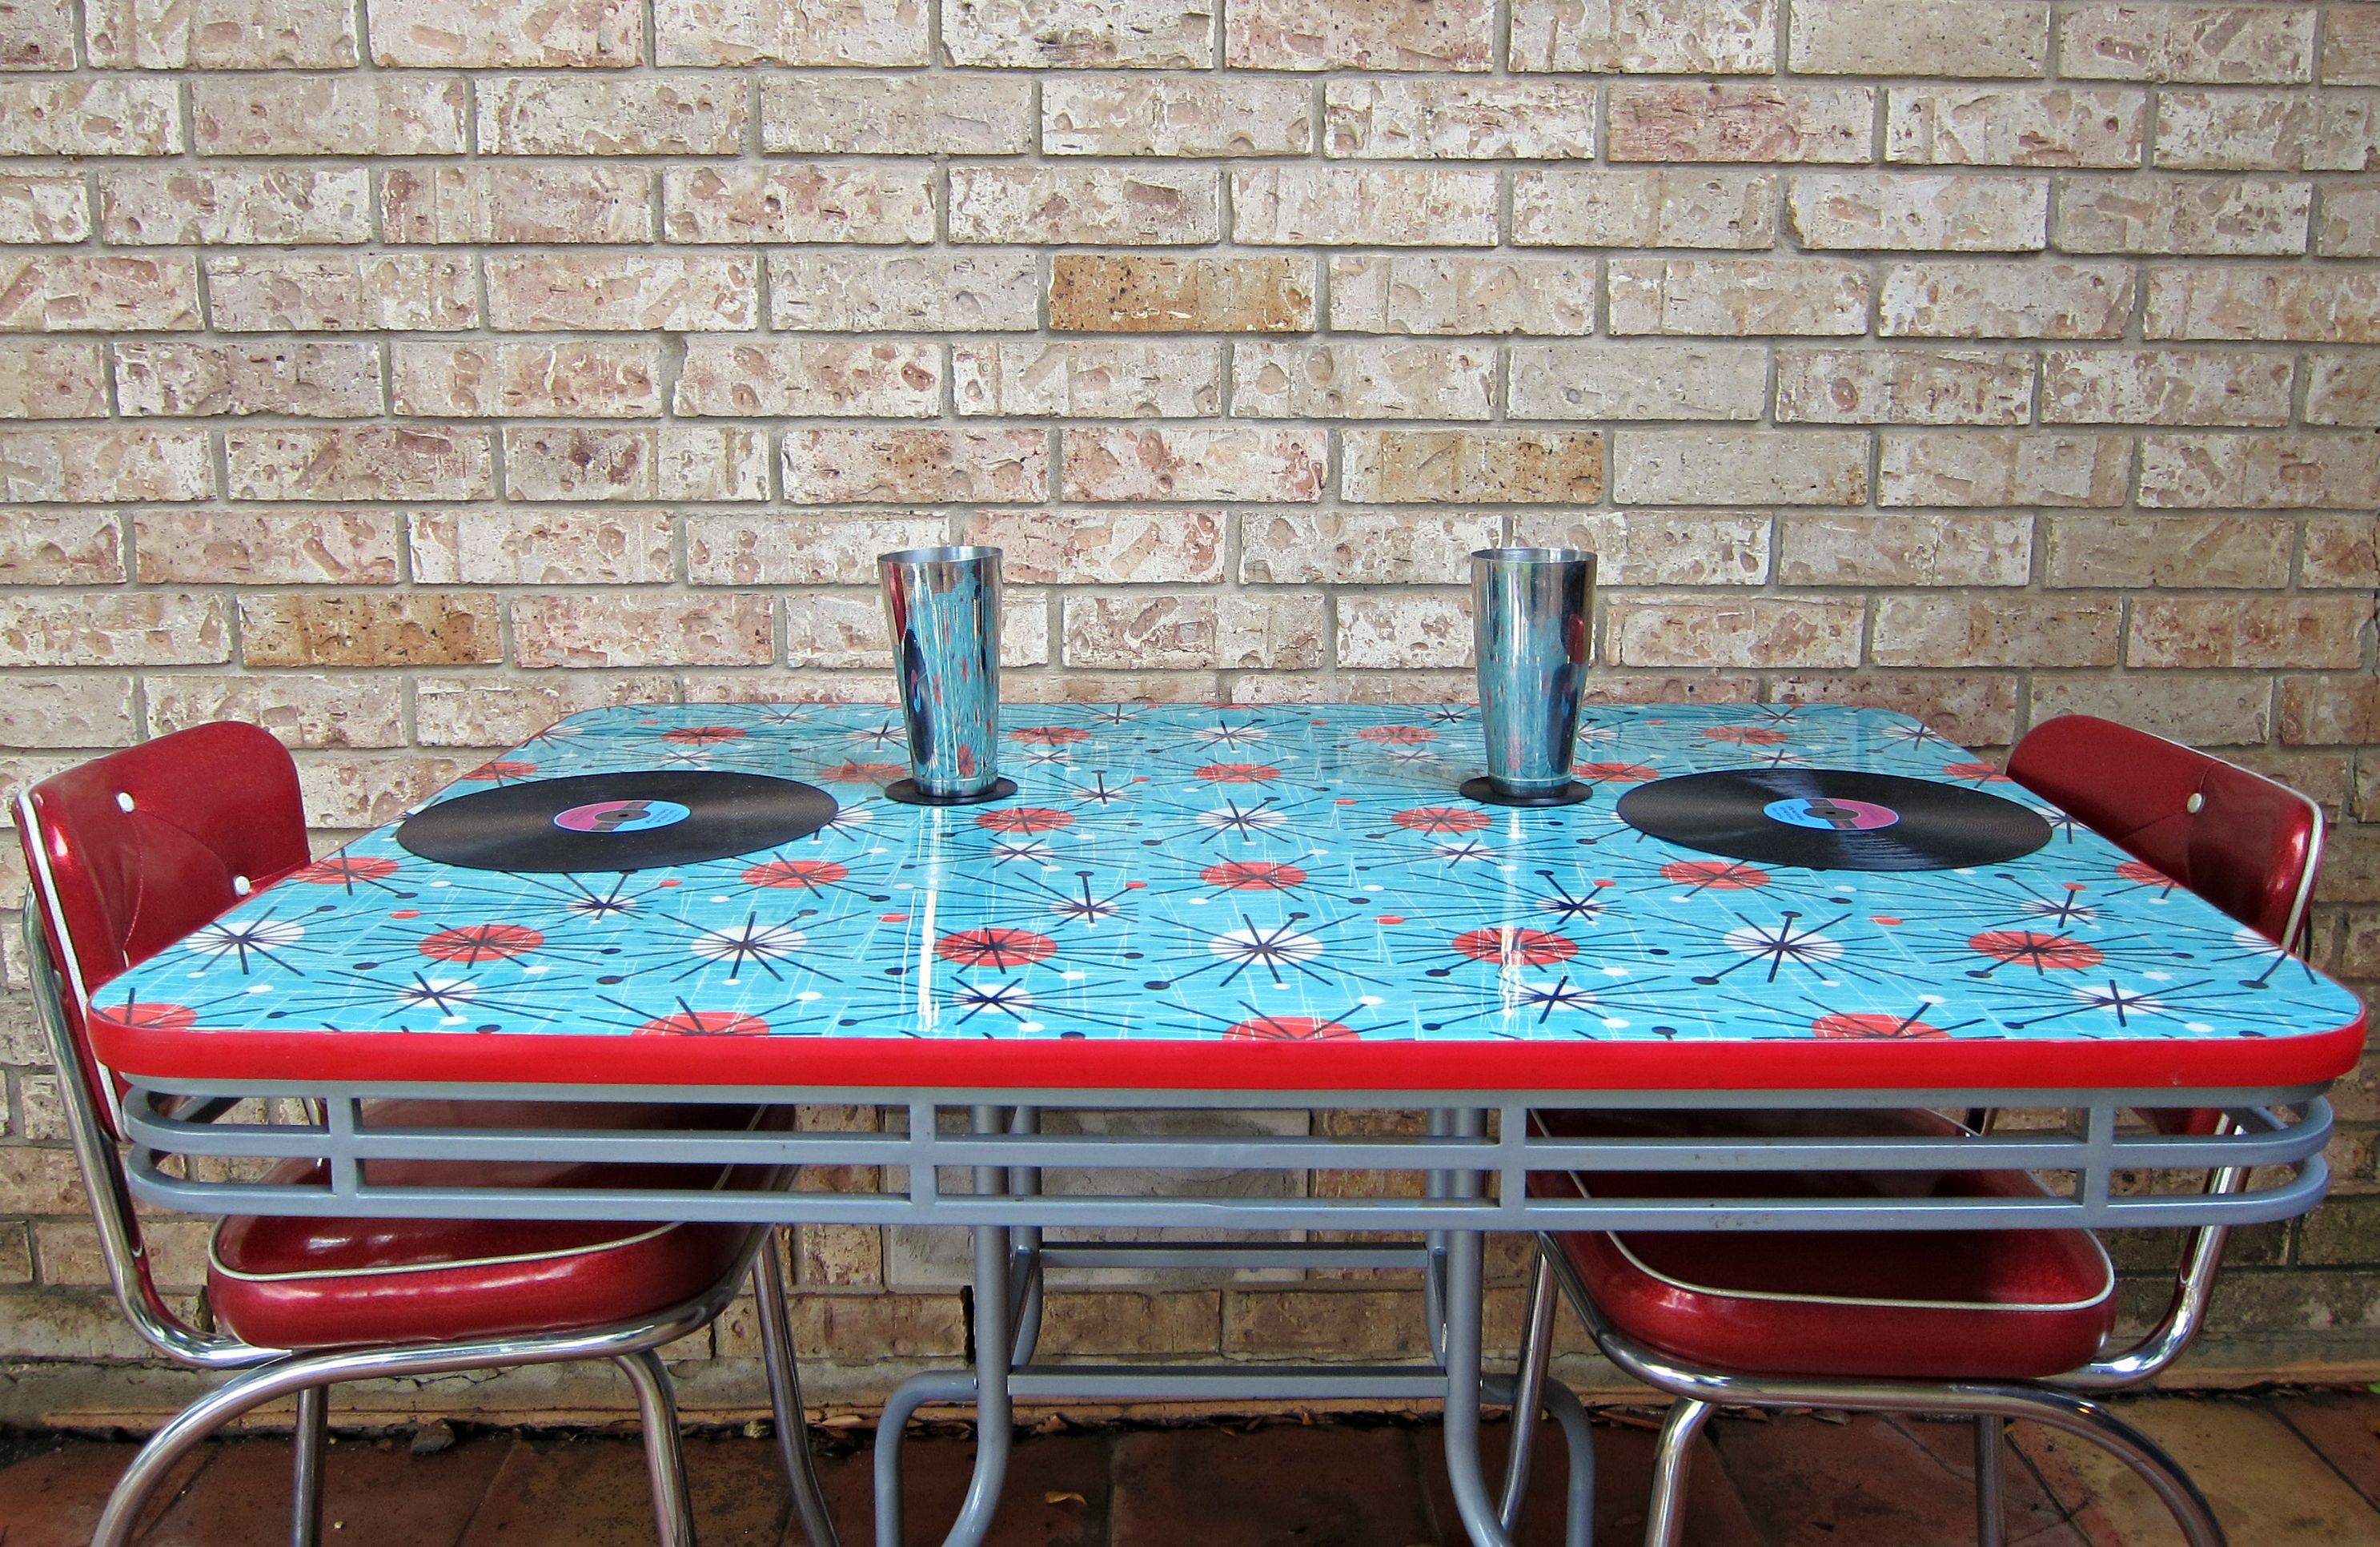 diy furniture refinishing projects. How To Refinish A Table With Fabric And Resin. Furniture RefinishingDiy Diy Refinishing Projects